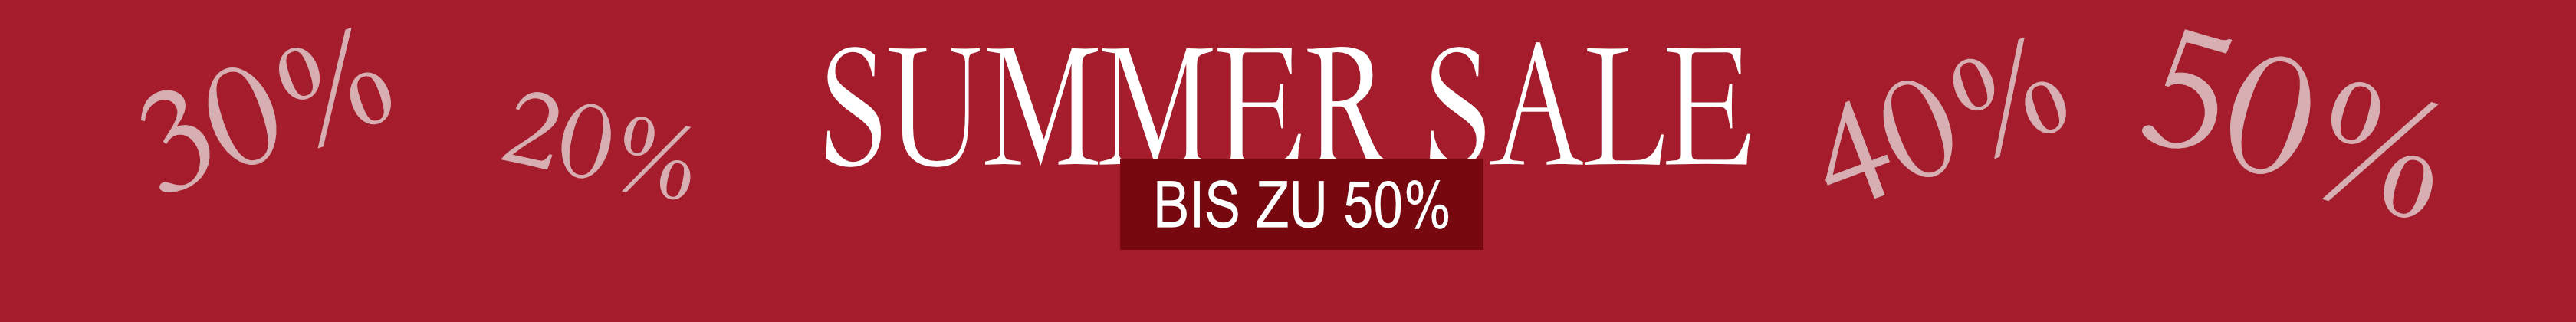 Summer Sale bis 50%